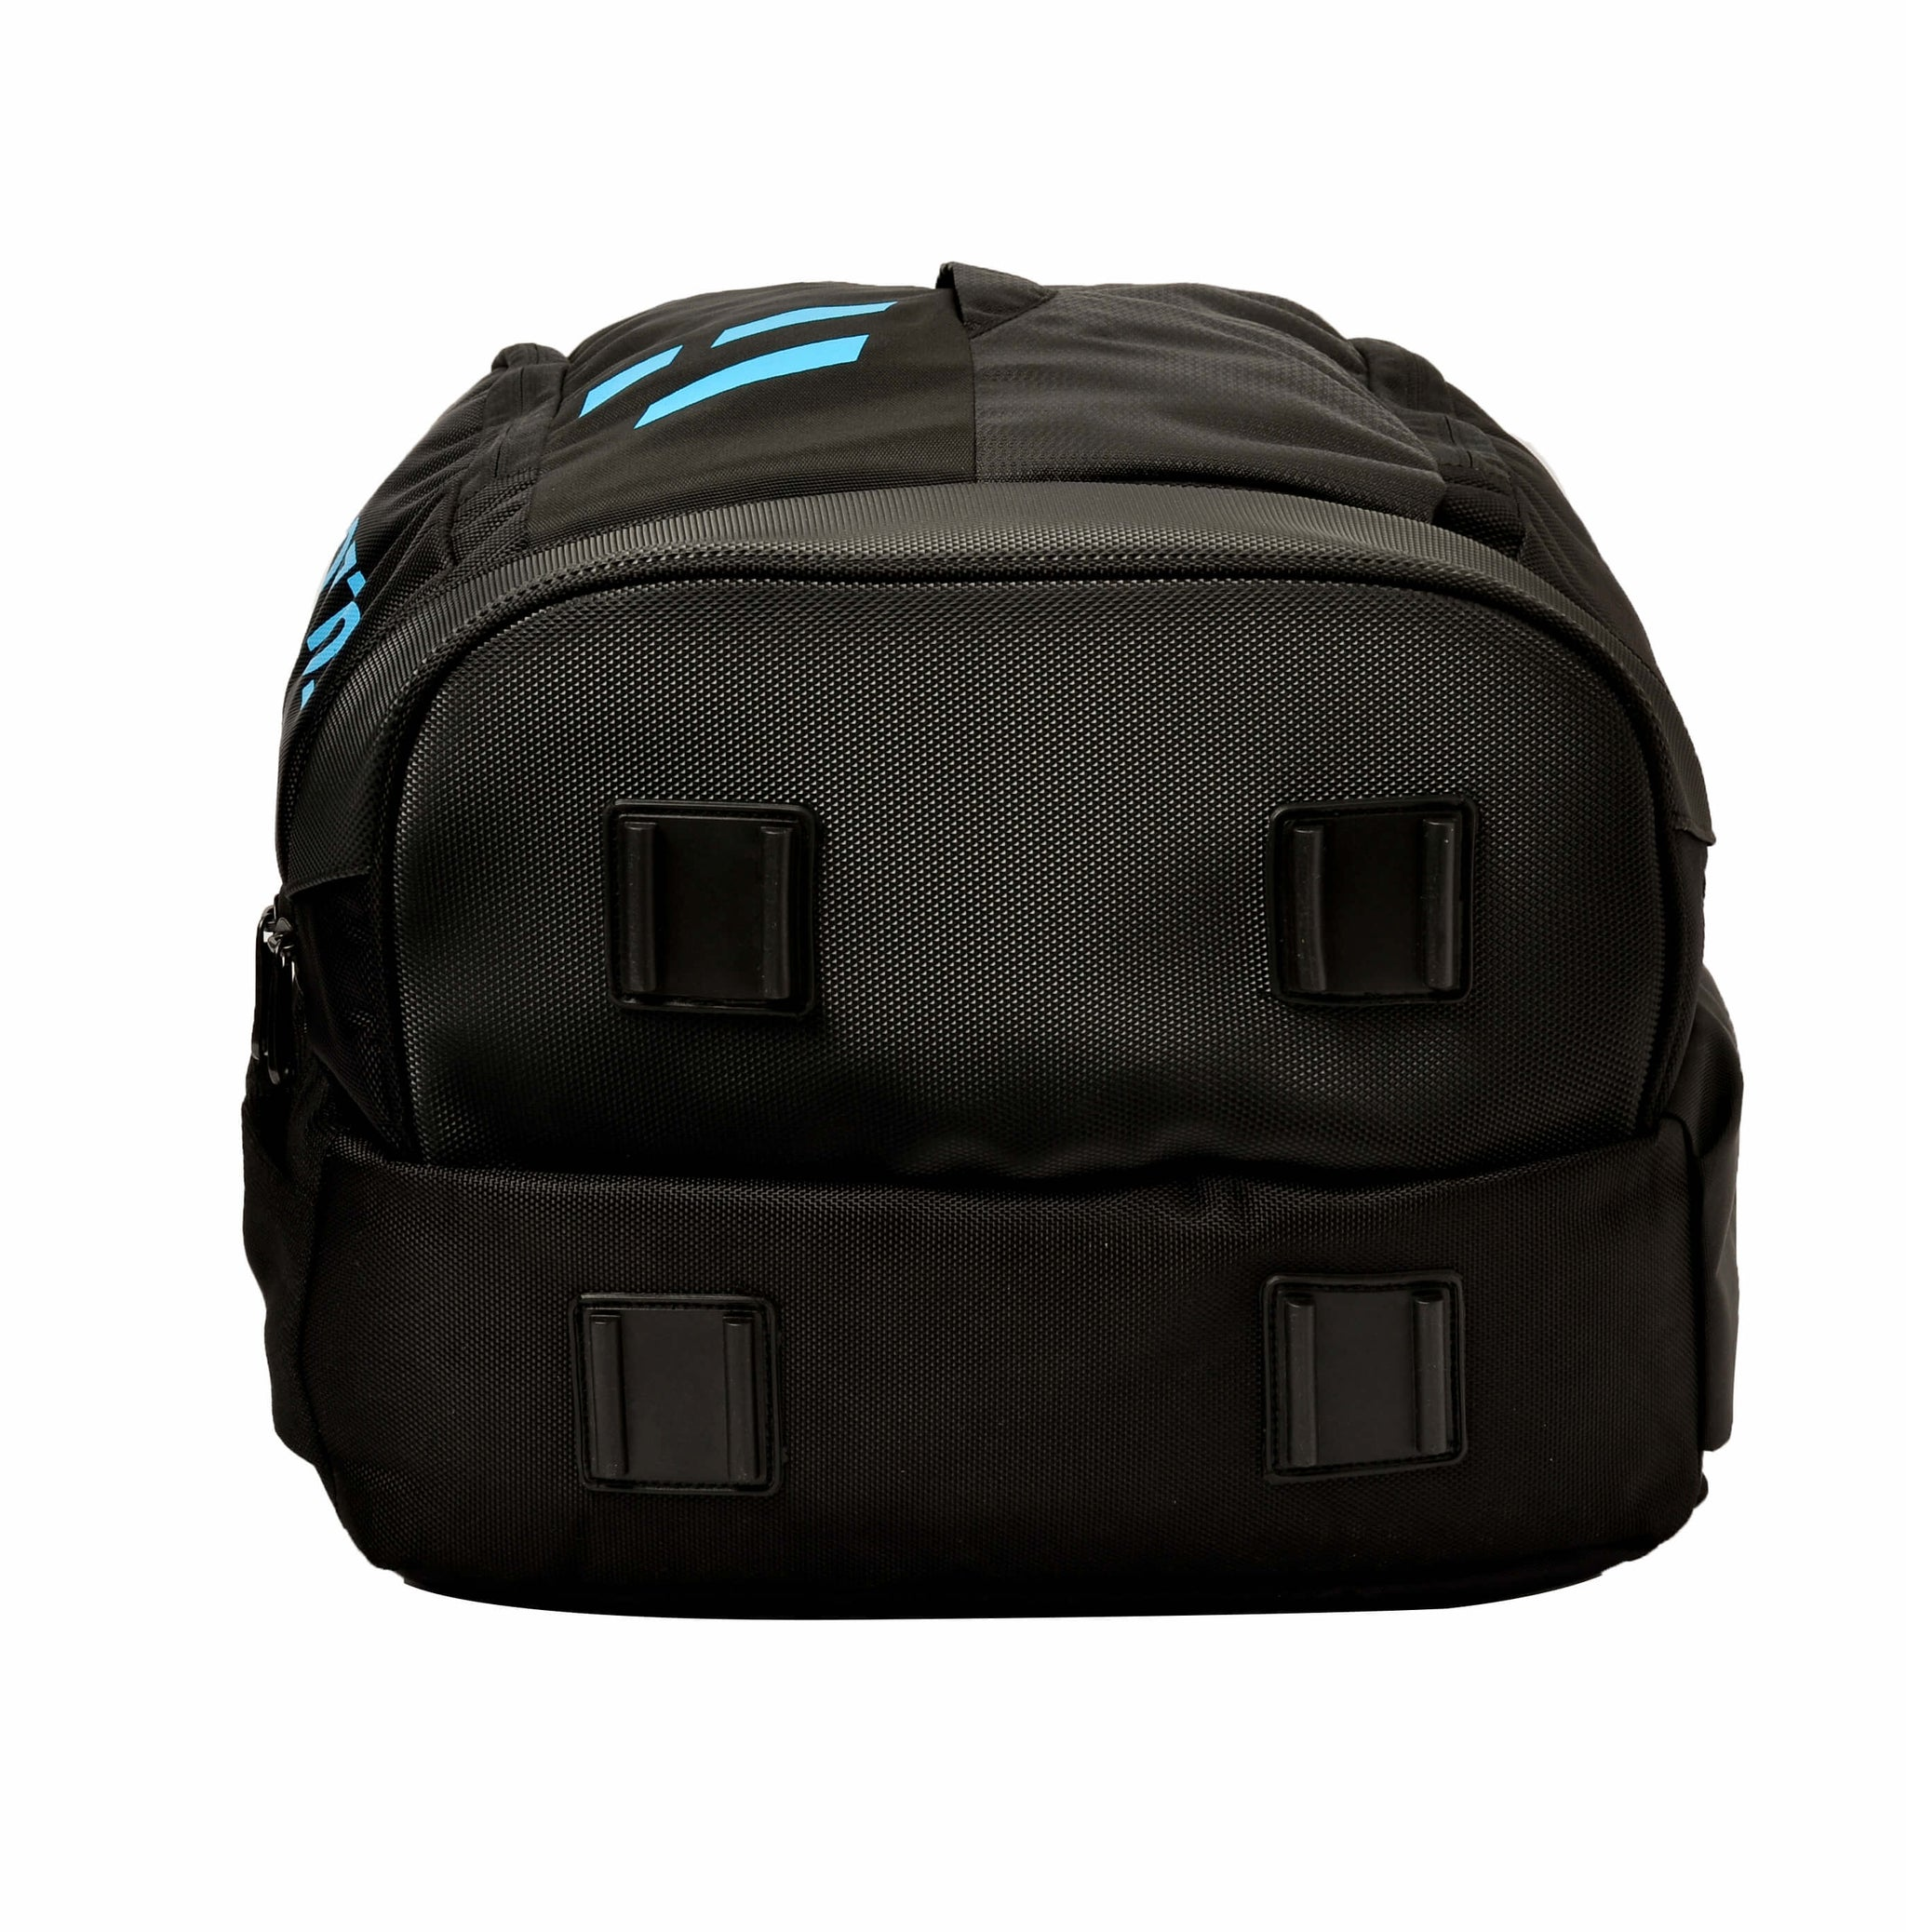 F Gear Booster V2 43 Liters Laptop Backpack (Black, Blue)